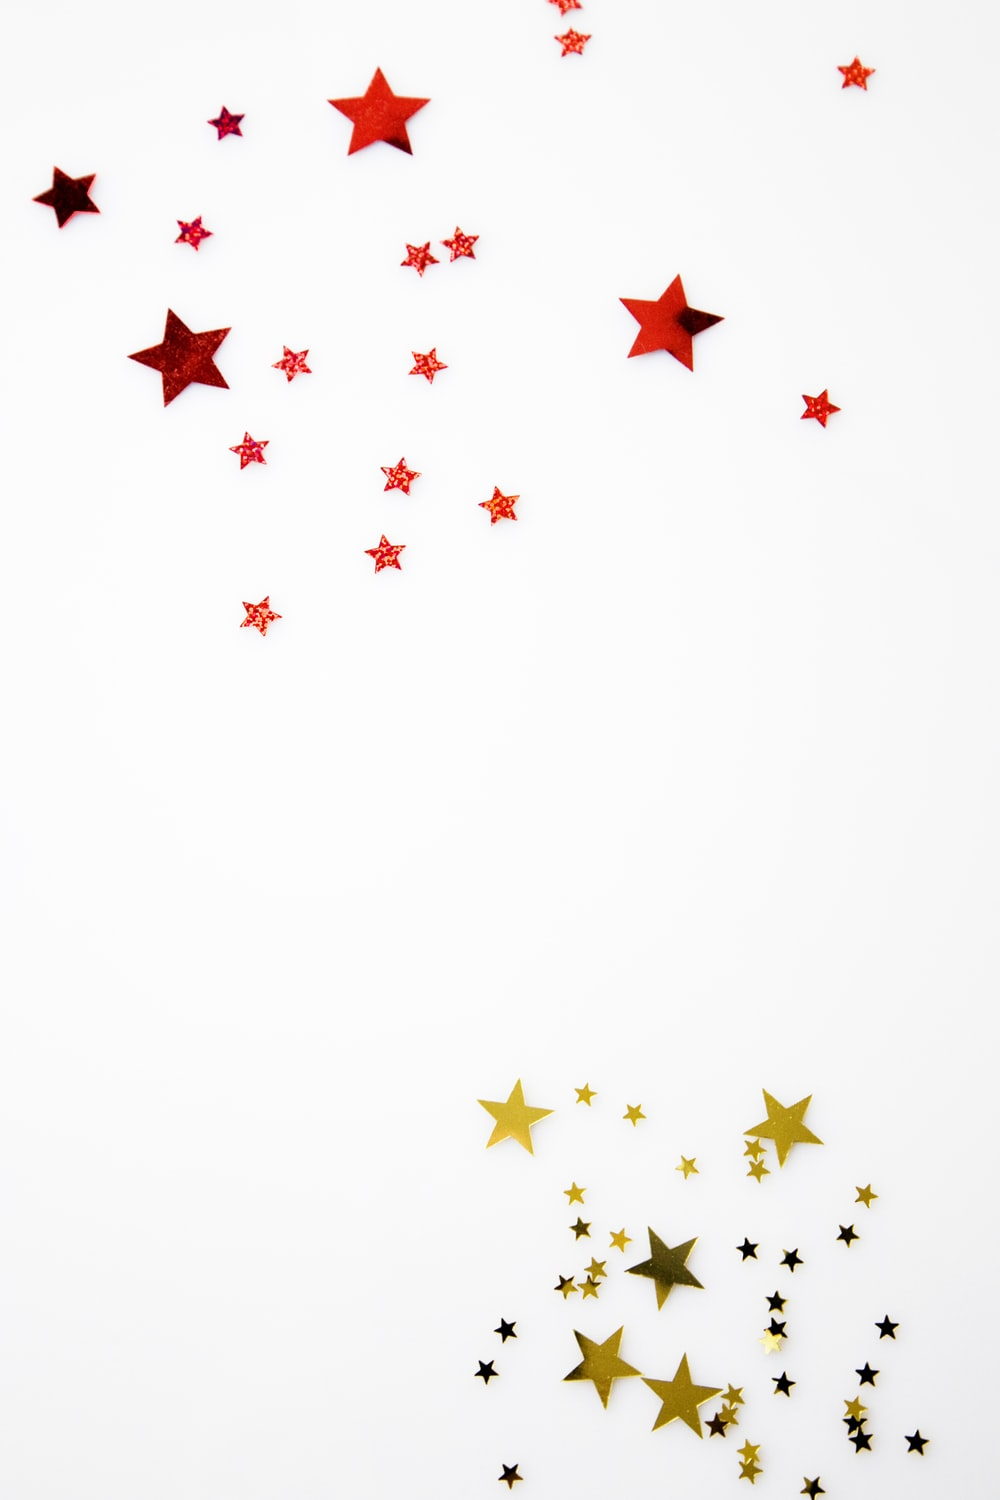 red and yellow star illustration